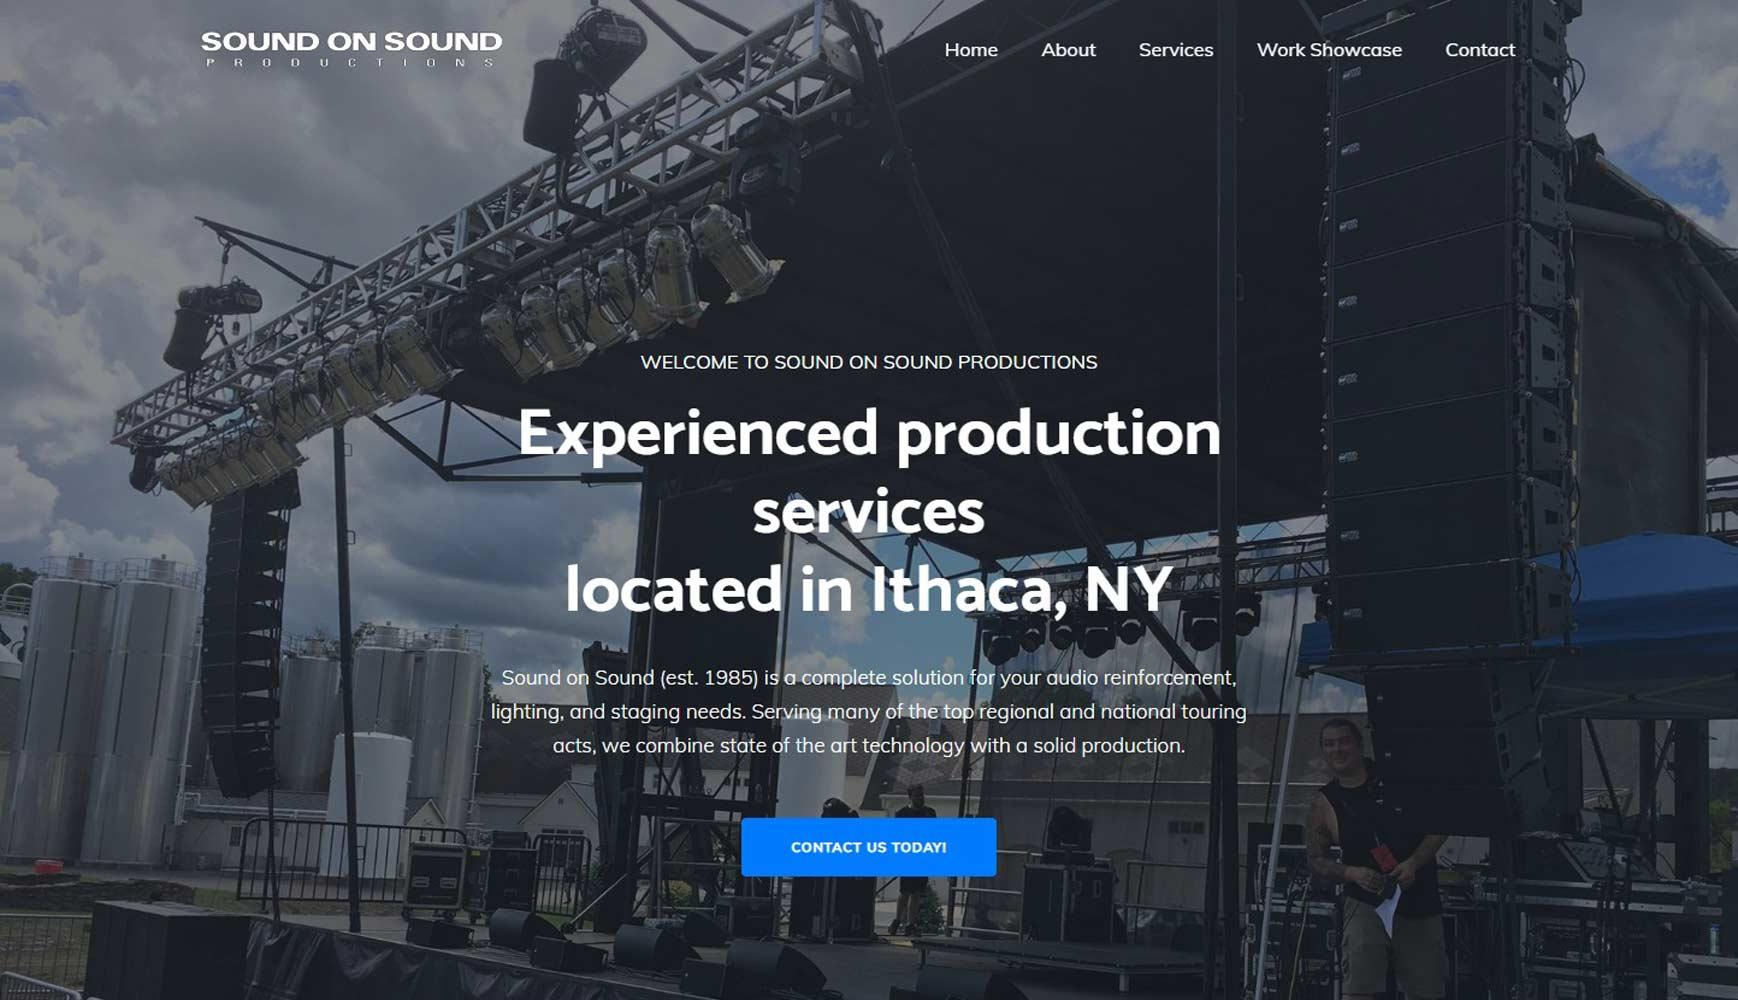 Sound on Sound Productions